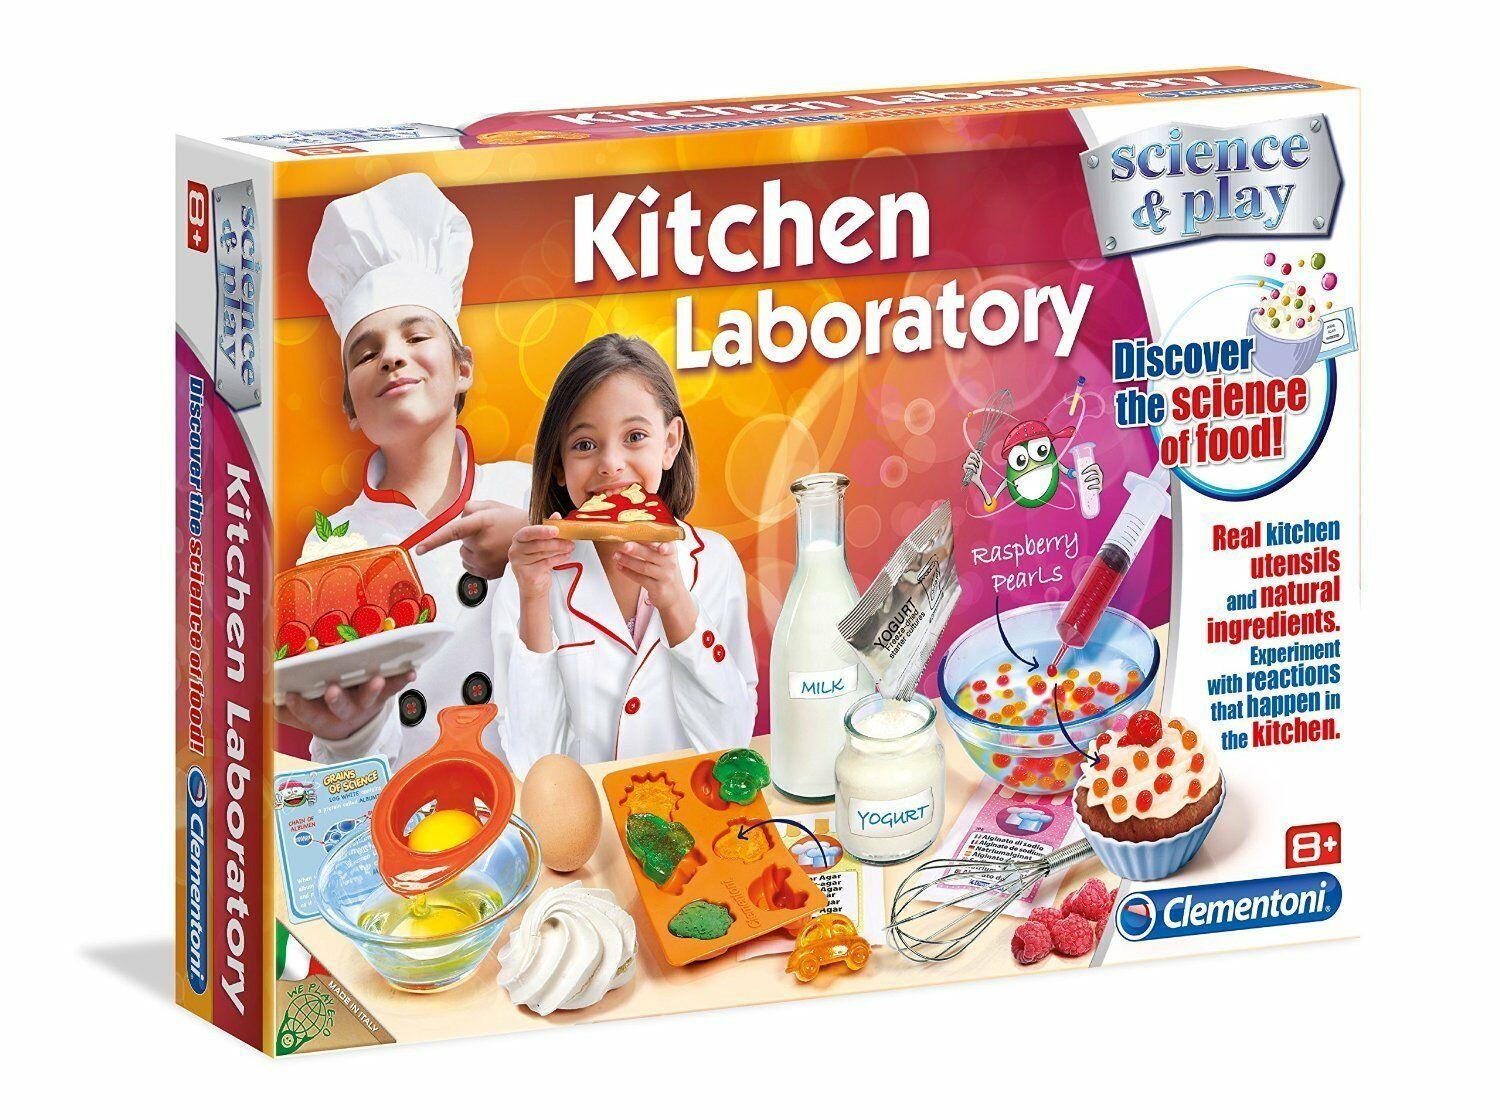 Science & Play Kitchen Laboratory Educational & Fun Food Science Set